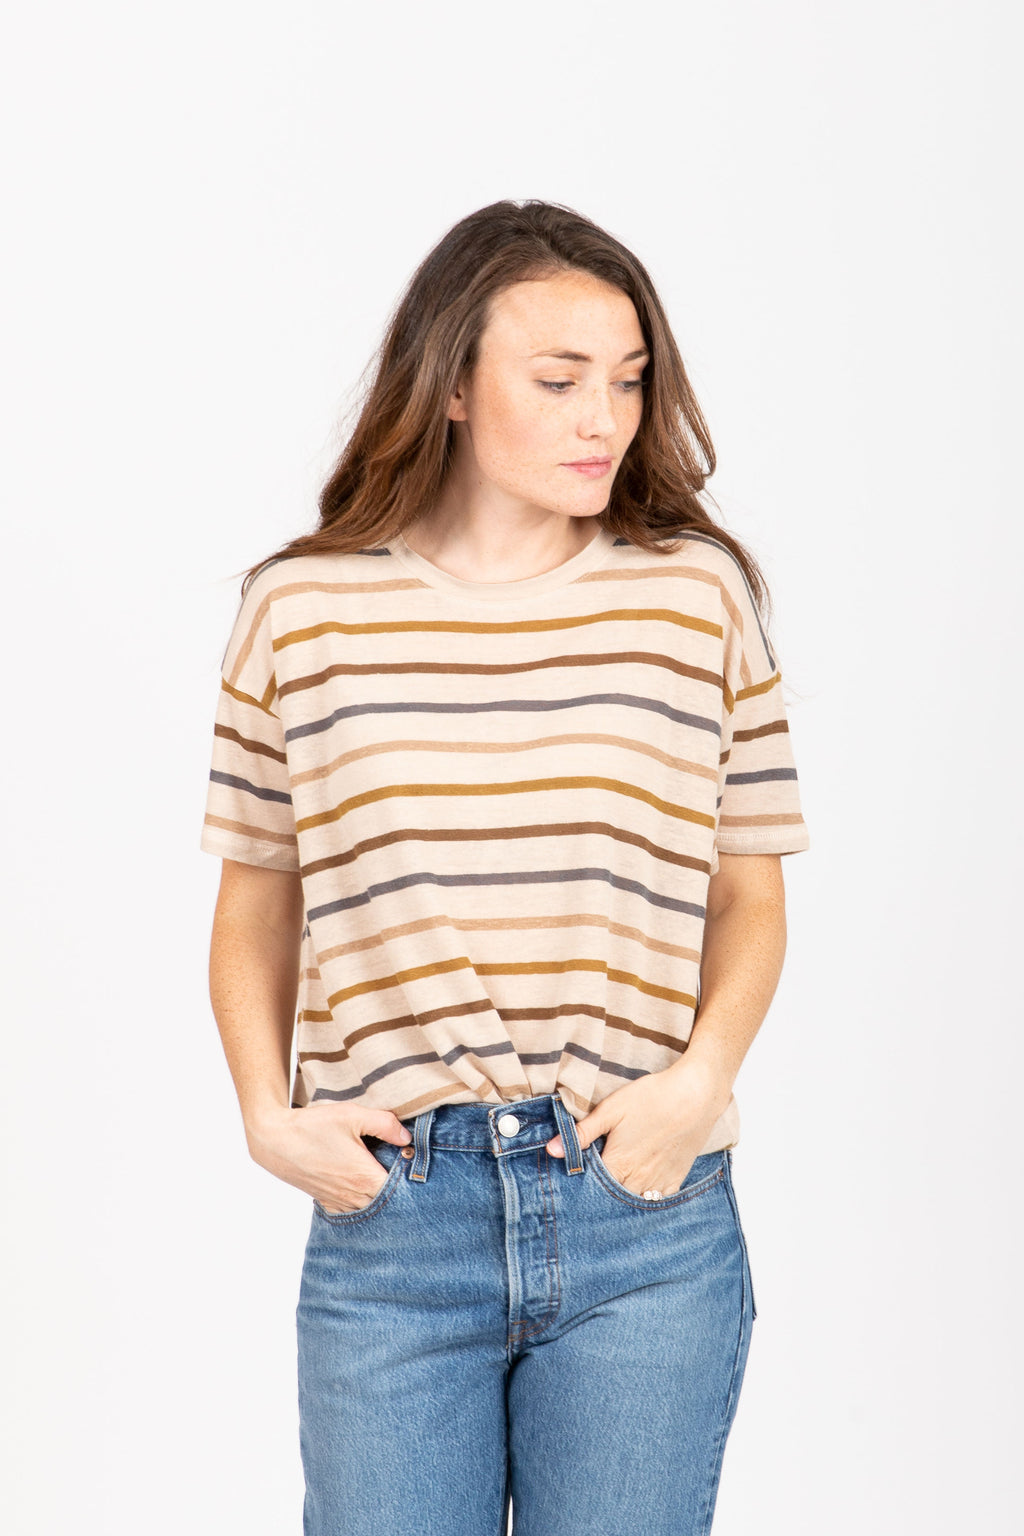 The Wheaton Striped Tee in Oatmeal